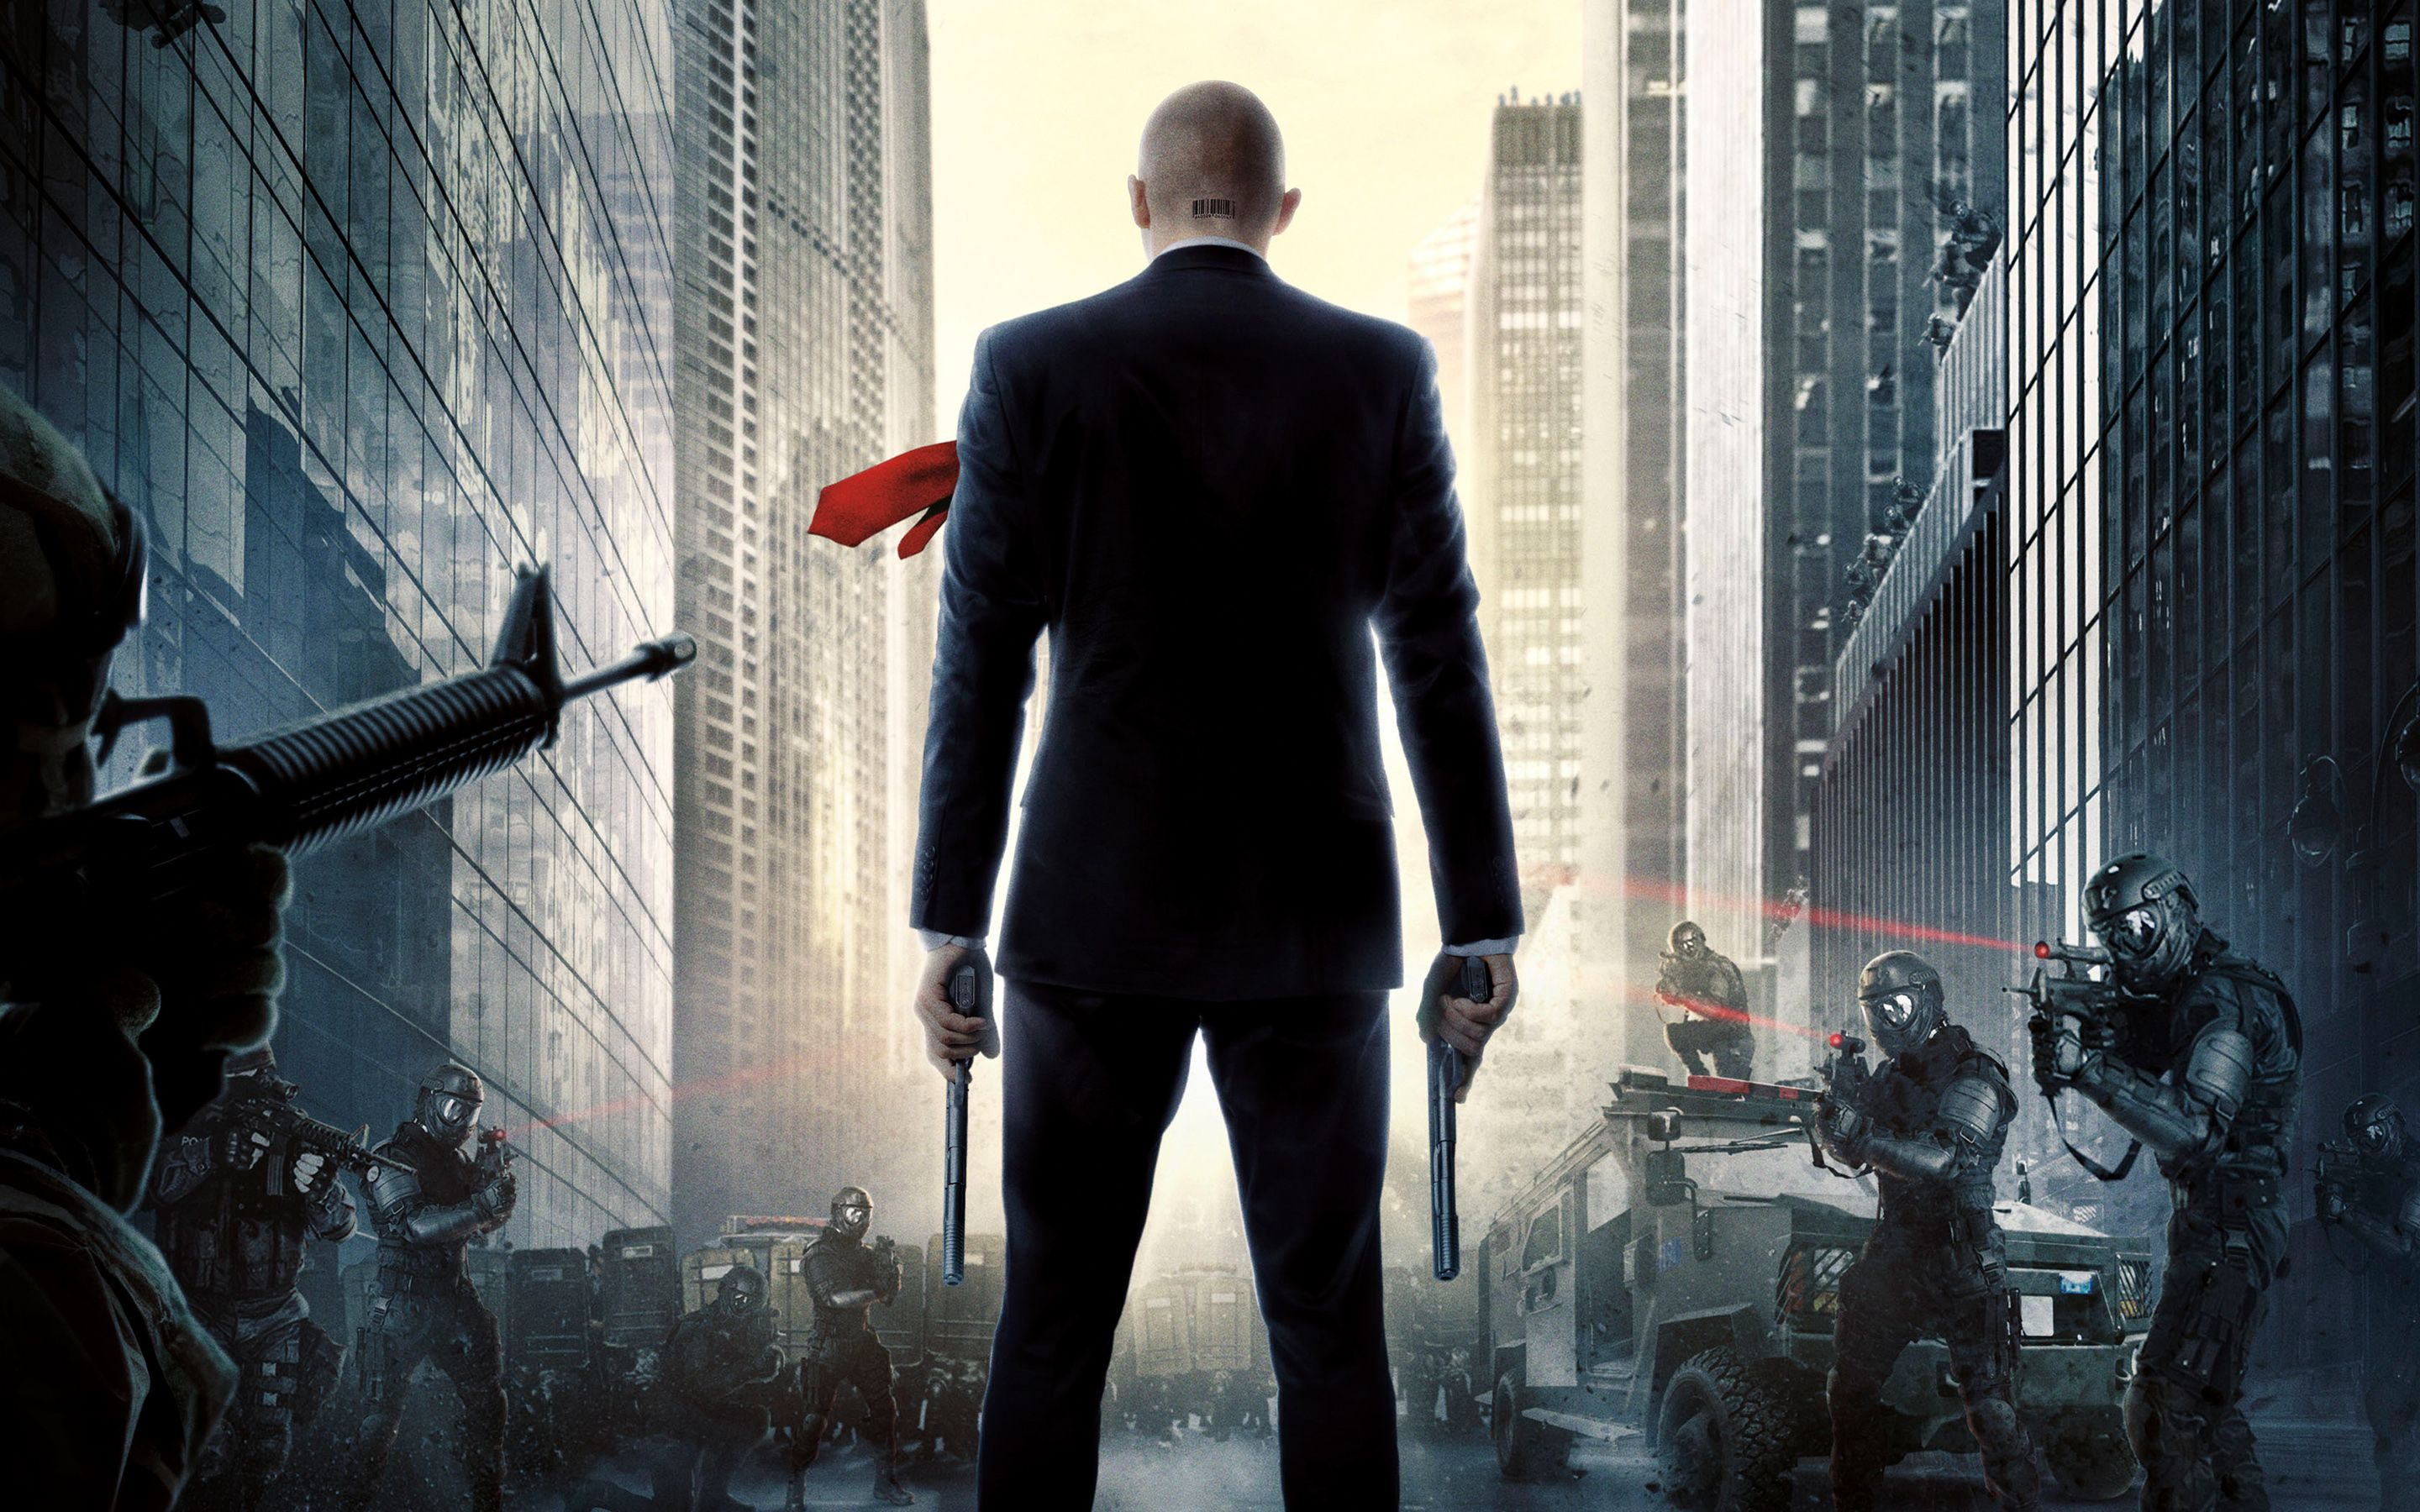 Hitman Movie Wallpapers Top Free Hitman Movie Backgrounds